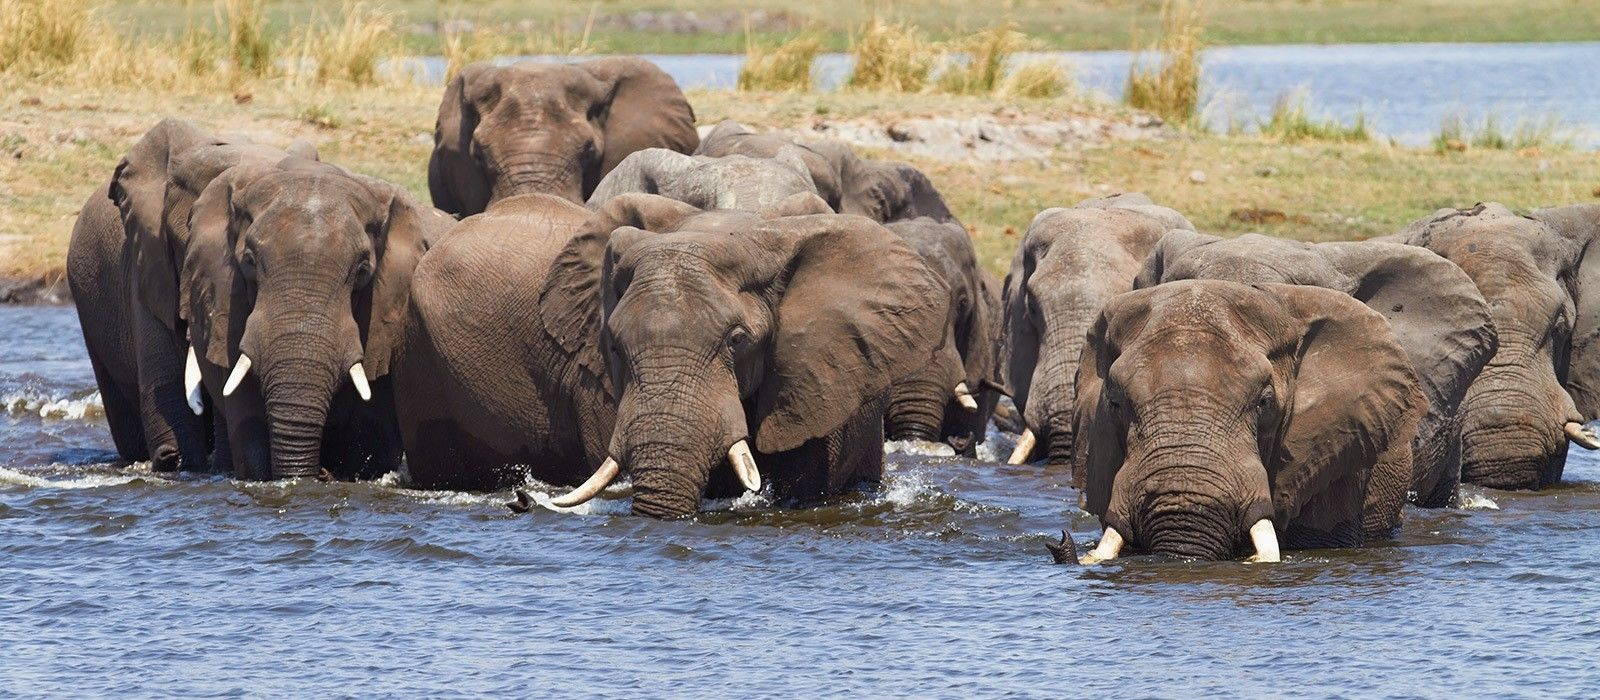 Victoria Falls & Botswana Highlights Tour Trip 2